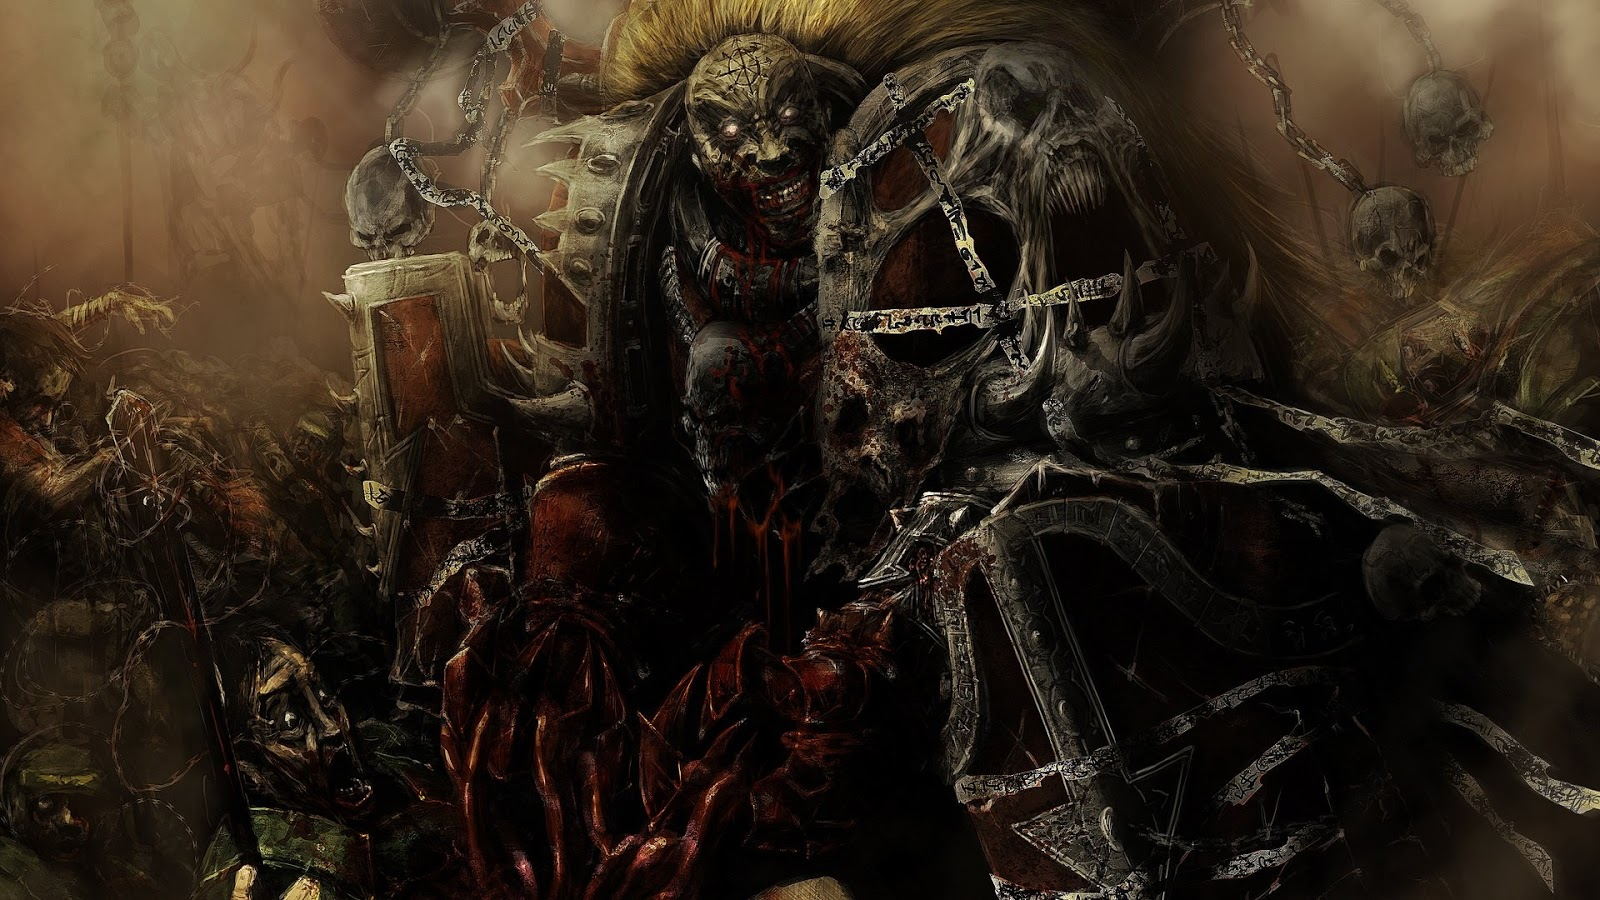 Amazing   Wallpaper Horse Creepy - horror_creepy_skulls_blood_warhammer_40k_chaos_imperial_desktop_1920x1080_hd-wallpaper-1599366  Snapshot_585.jpg